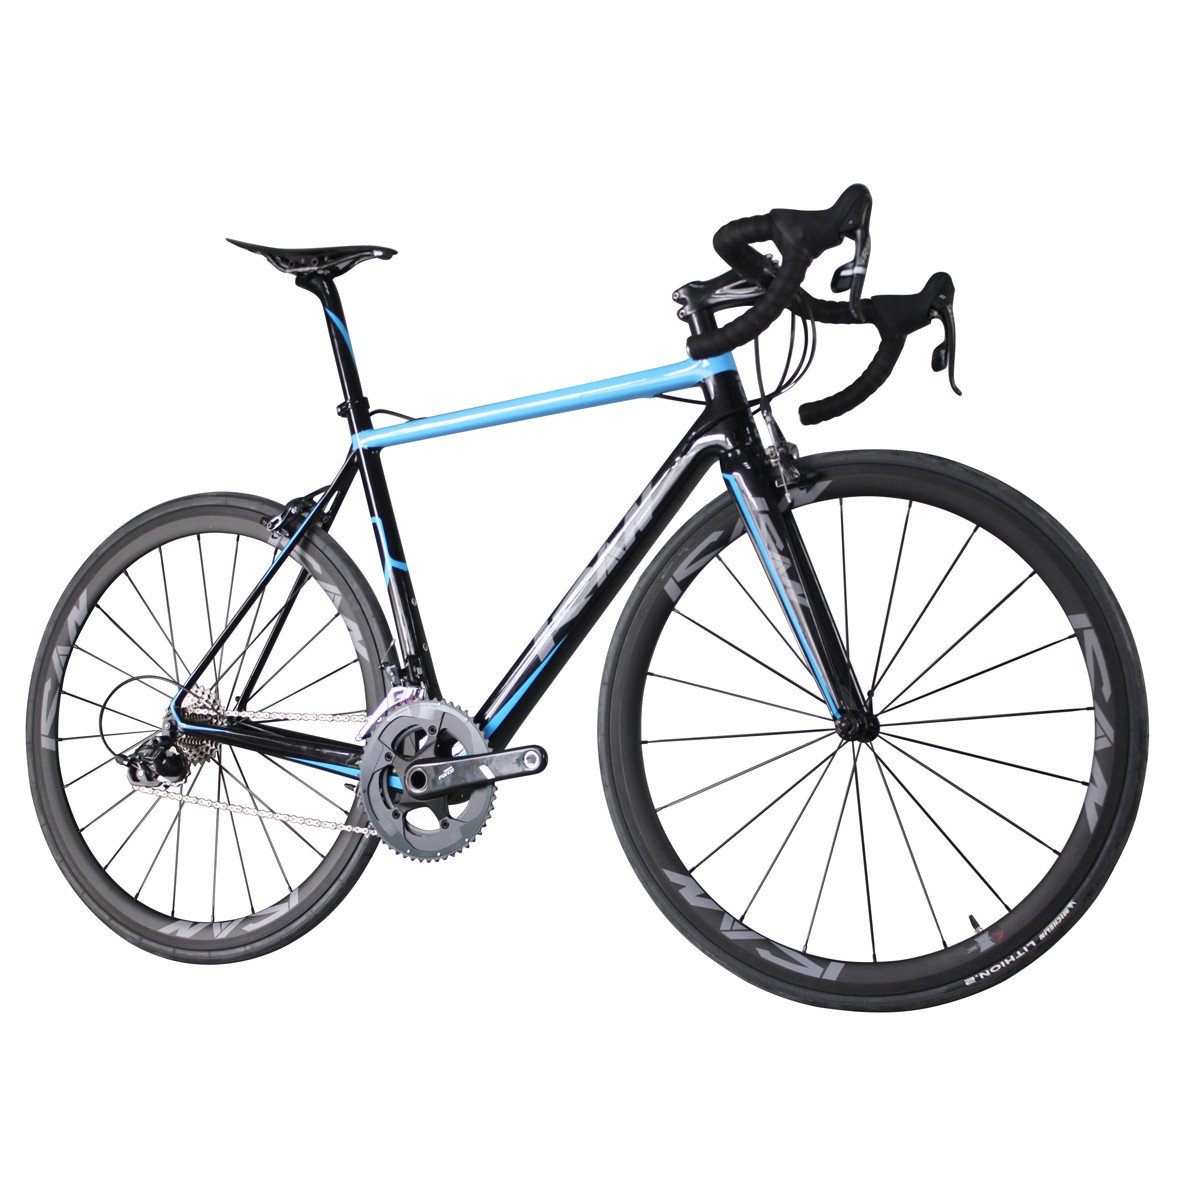 ICAN Carbon Road Bike